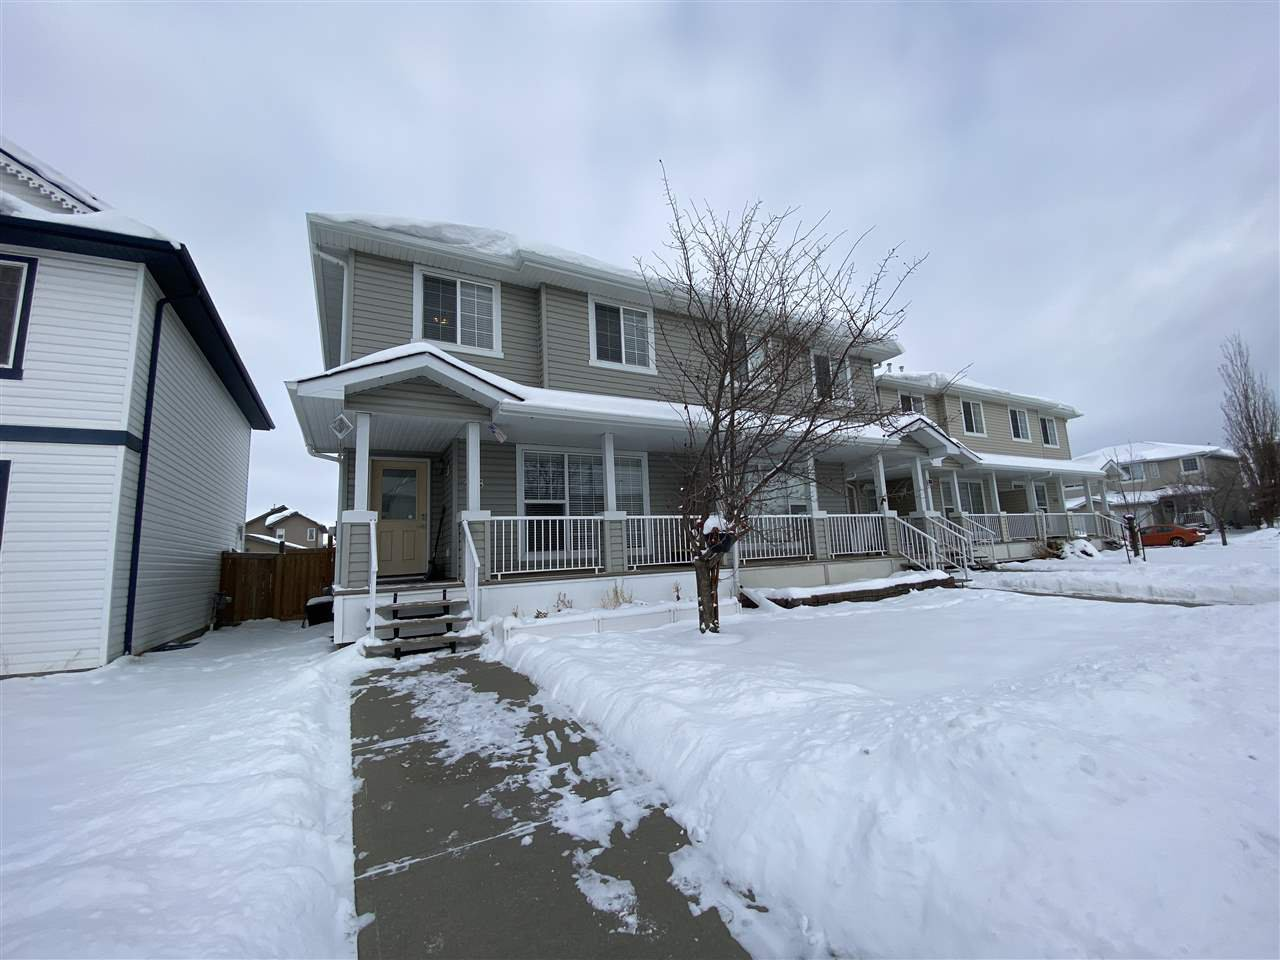 Main Photo: 2318 28A Avenue in Edmonton: Zone 30 House Half Duplex for sale : MLS®# E4221937